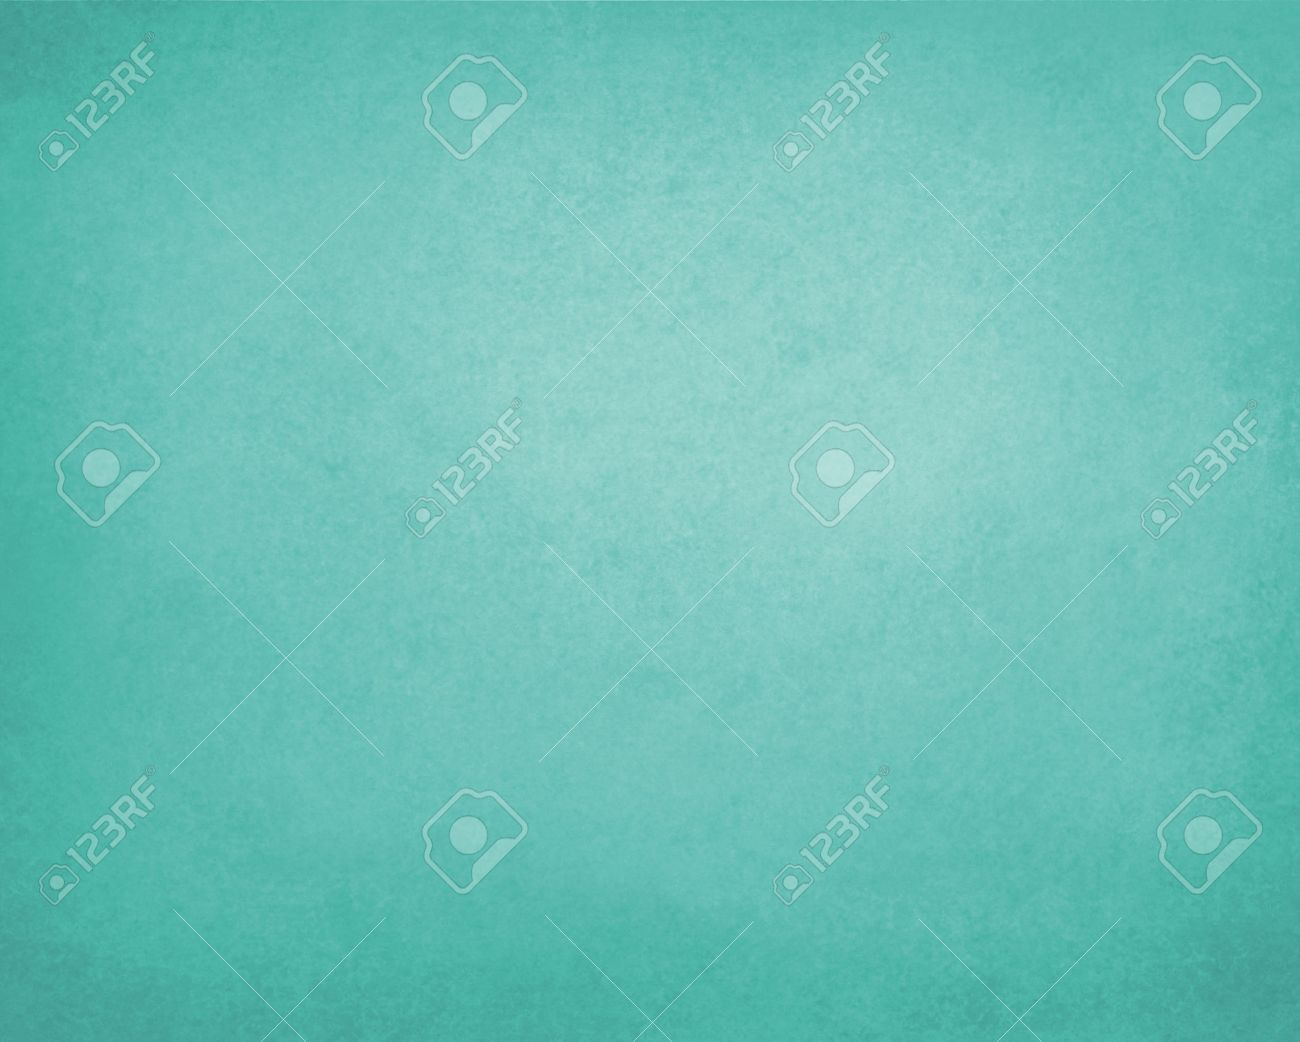 Soft Green Color Teal Blue Green Background Paper Vintage Texture And Distressed